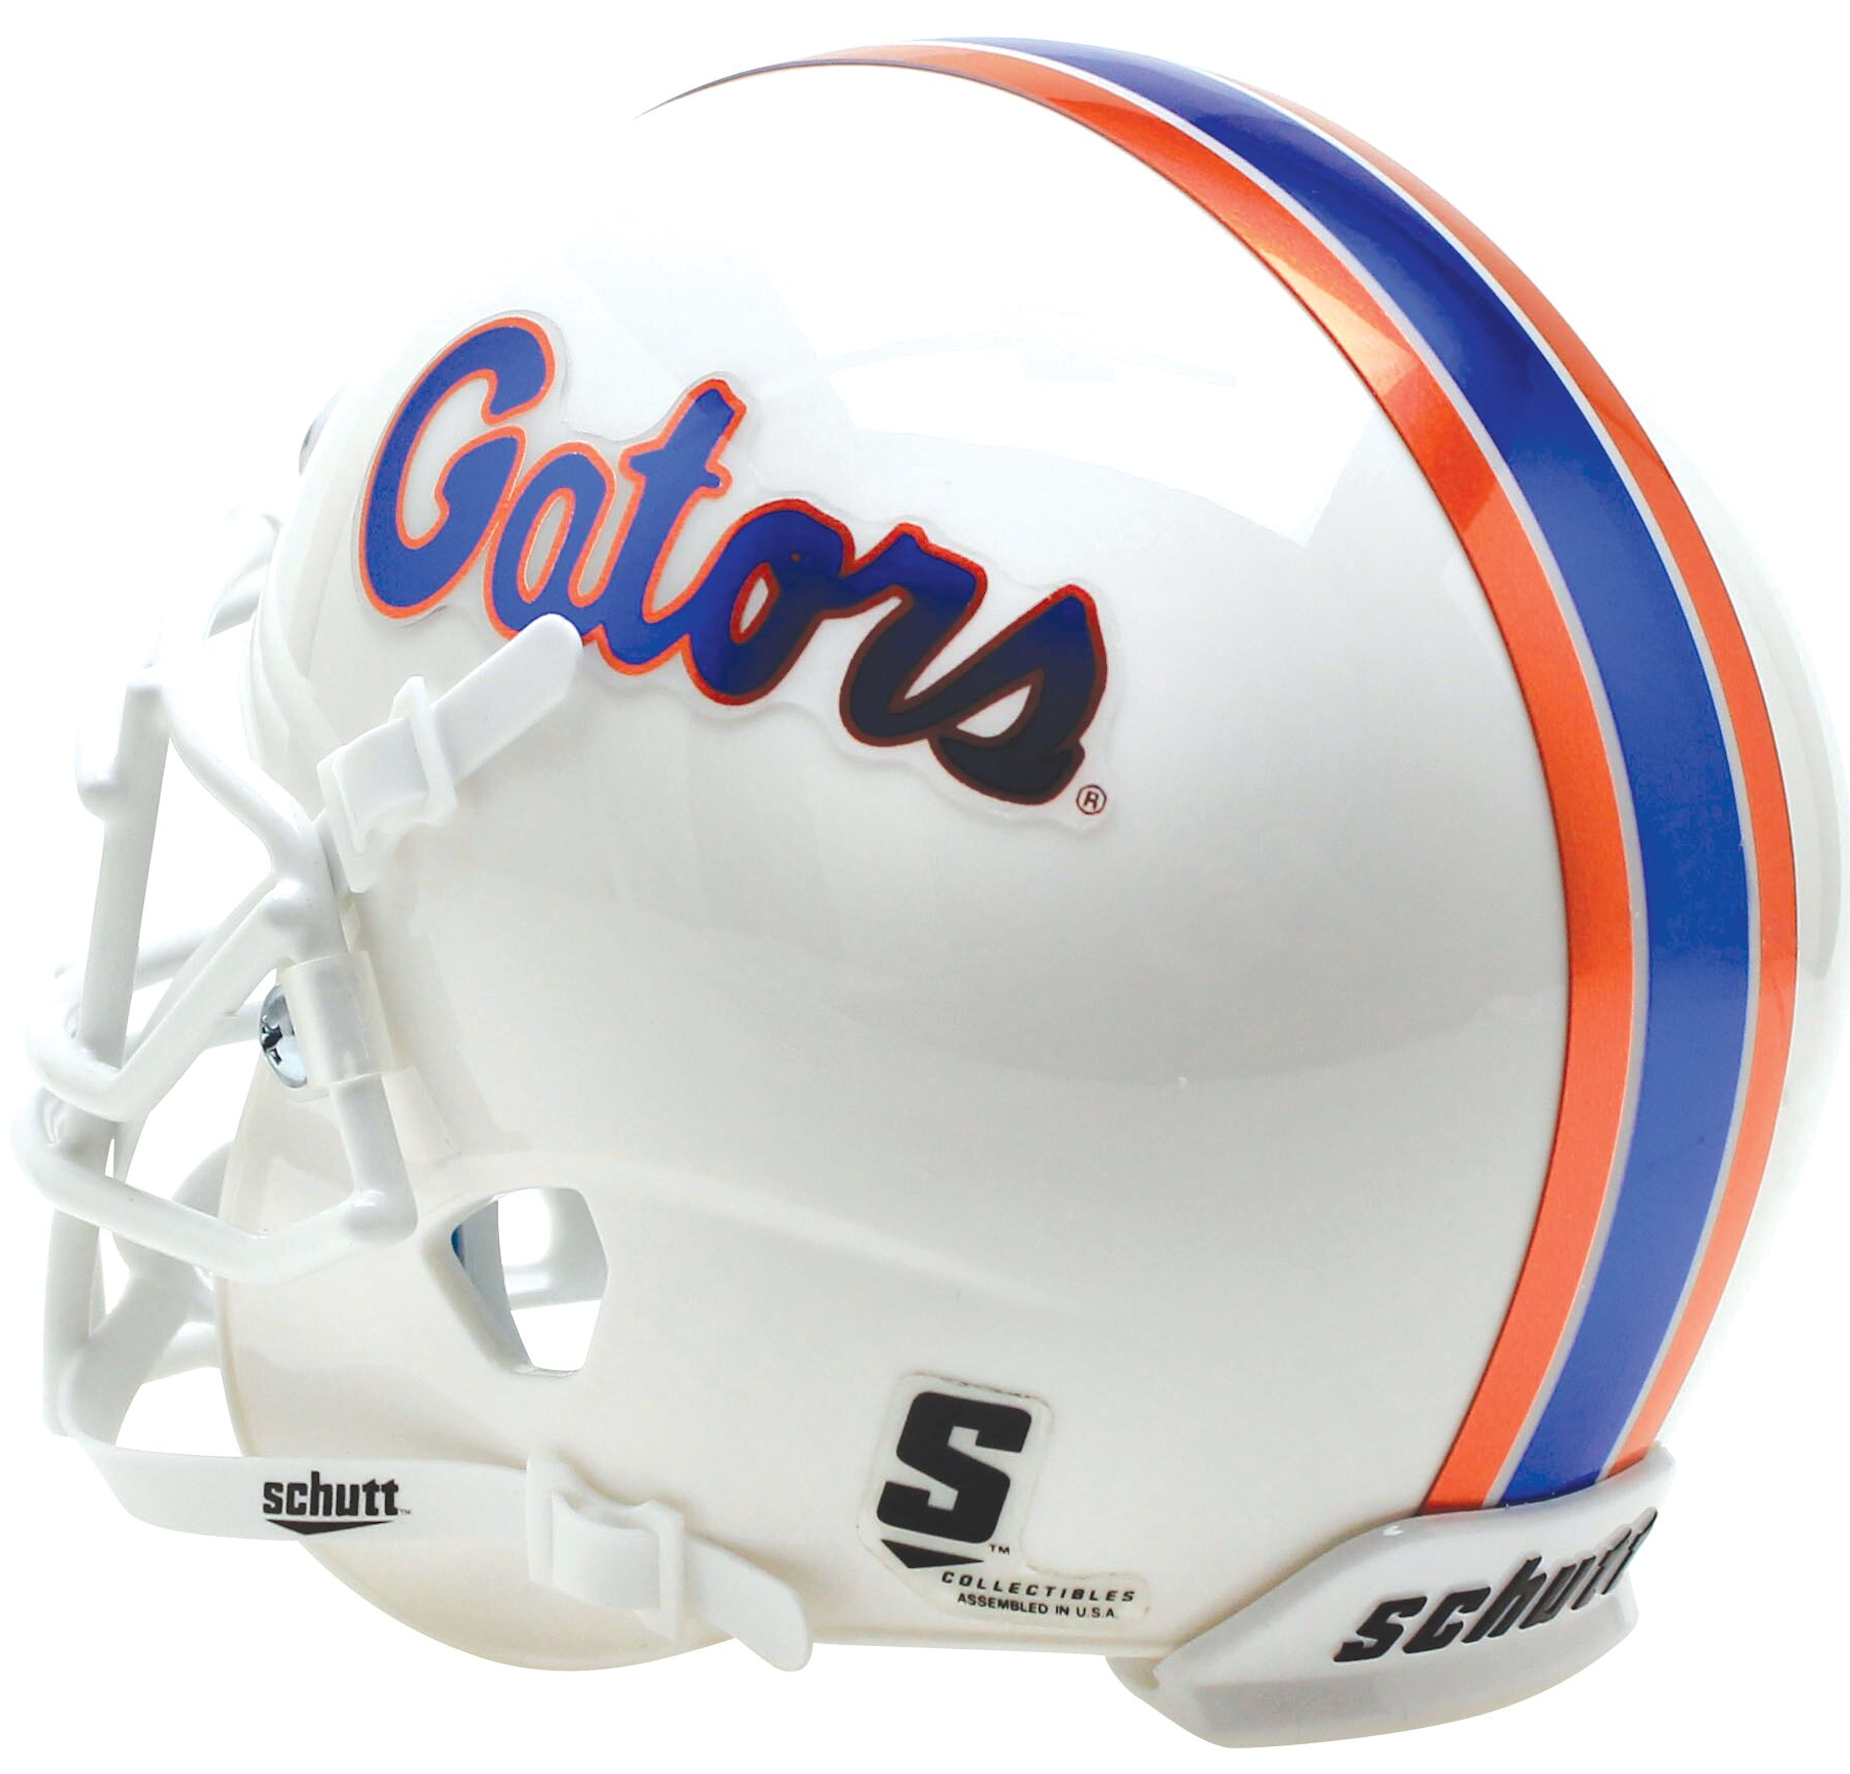 Florida Gators Authentic College XP Football Helmet Schutt <B>White Chrome Decal</B>